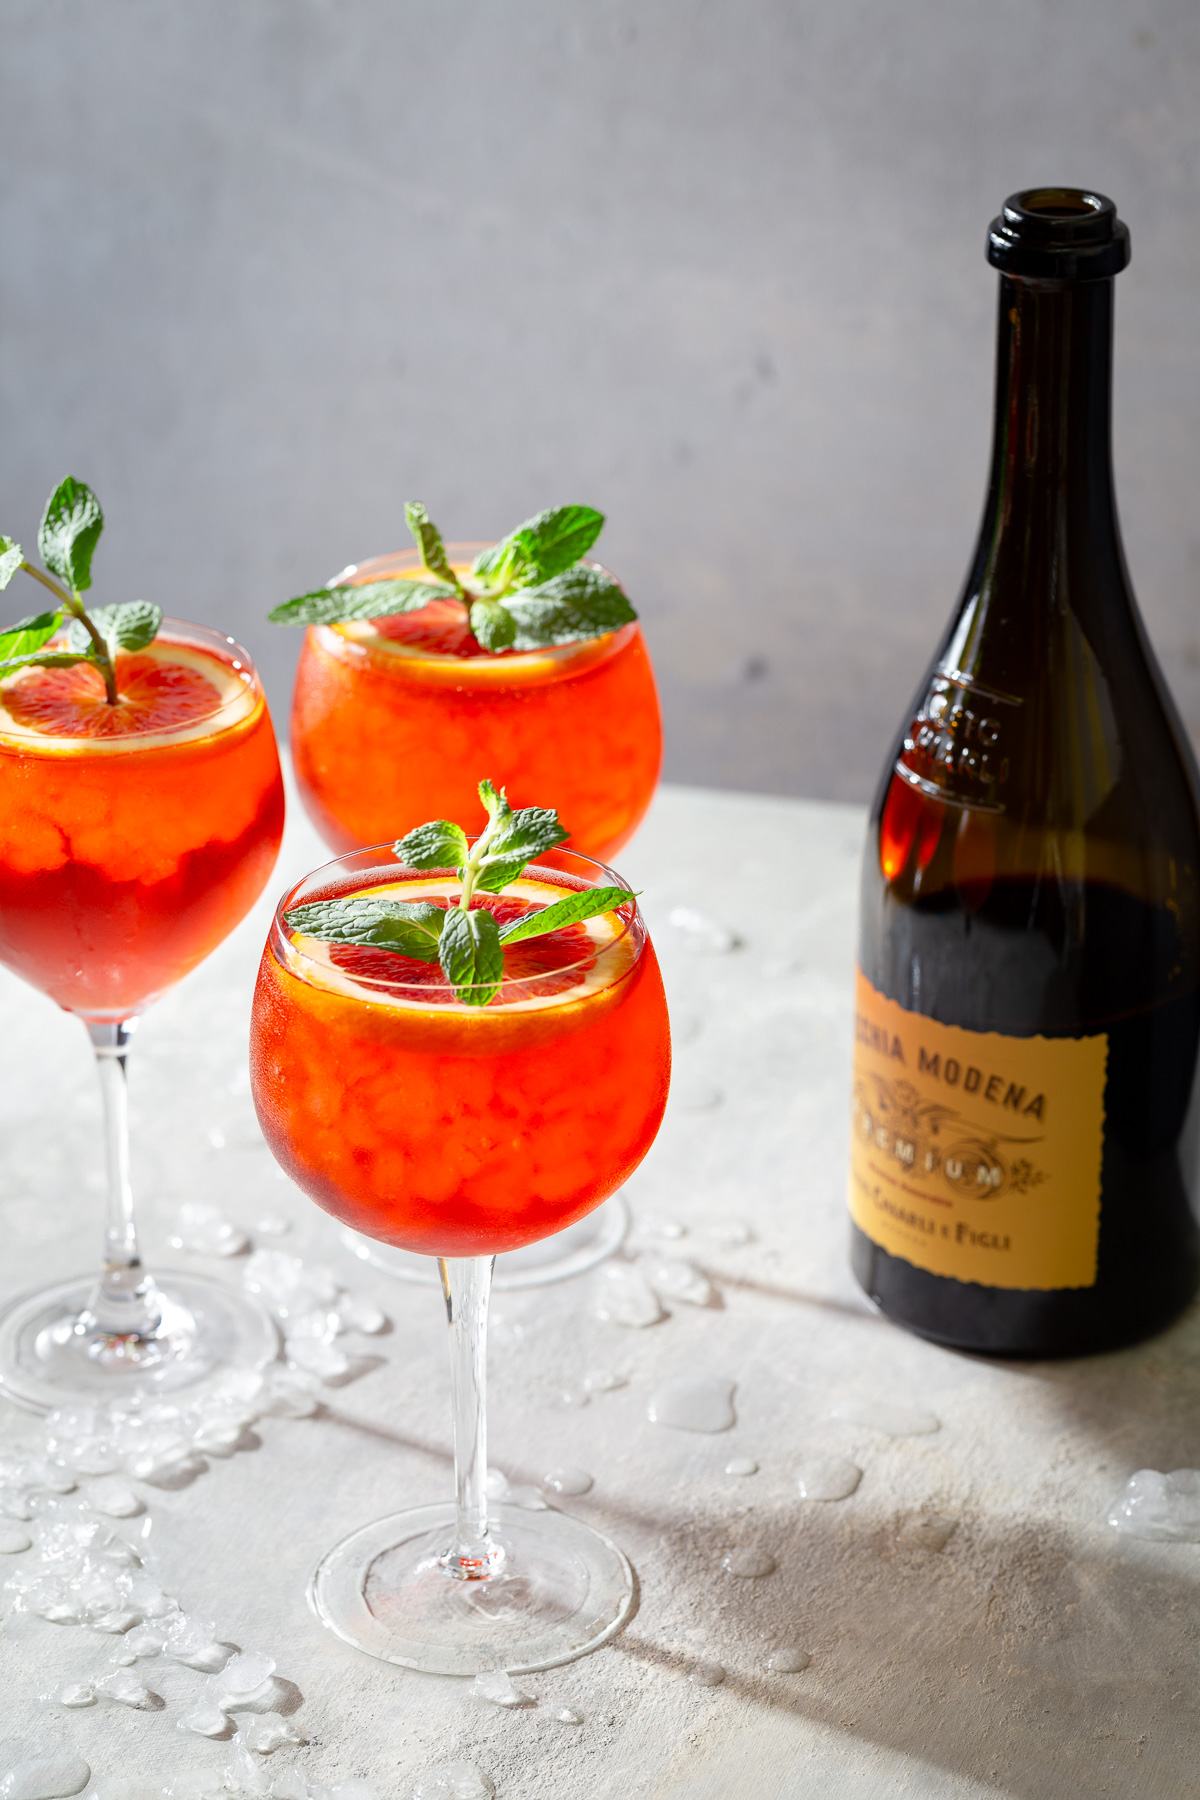 Three Lambrusco spritz cocktails in wine glasses and garnished with orange slices and mint sprigs shown with a bottle of Lambrusco.